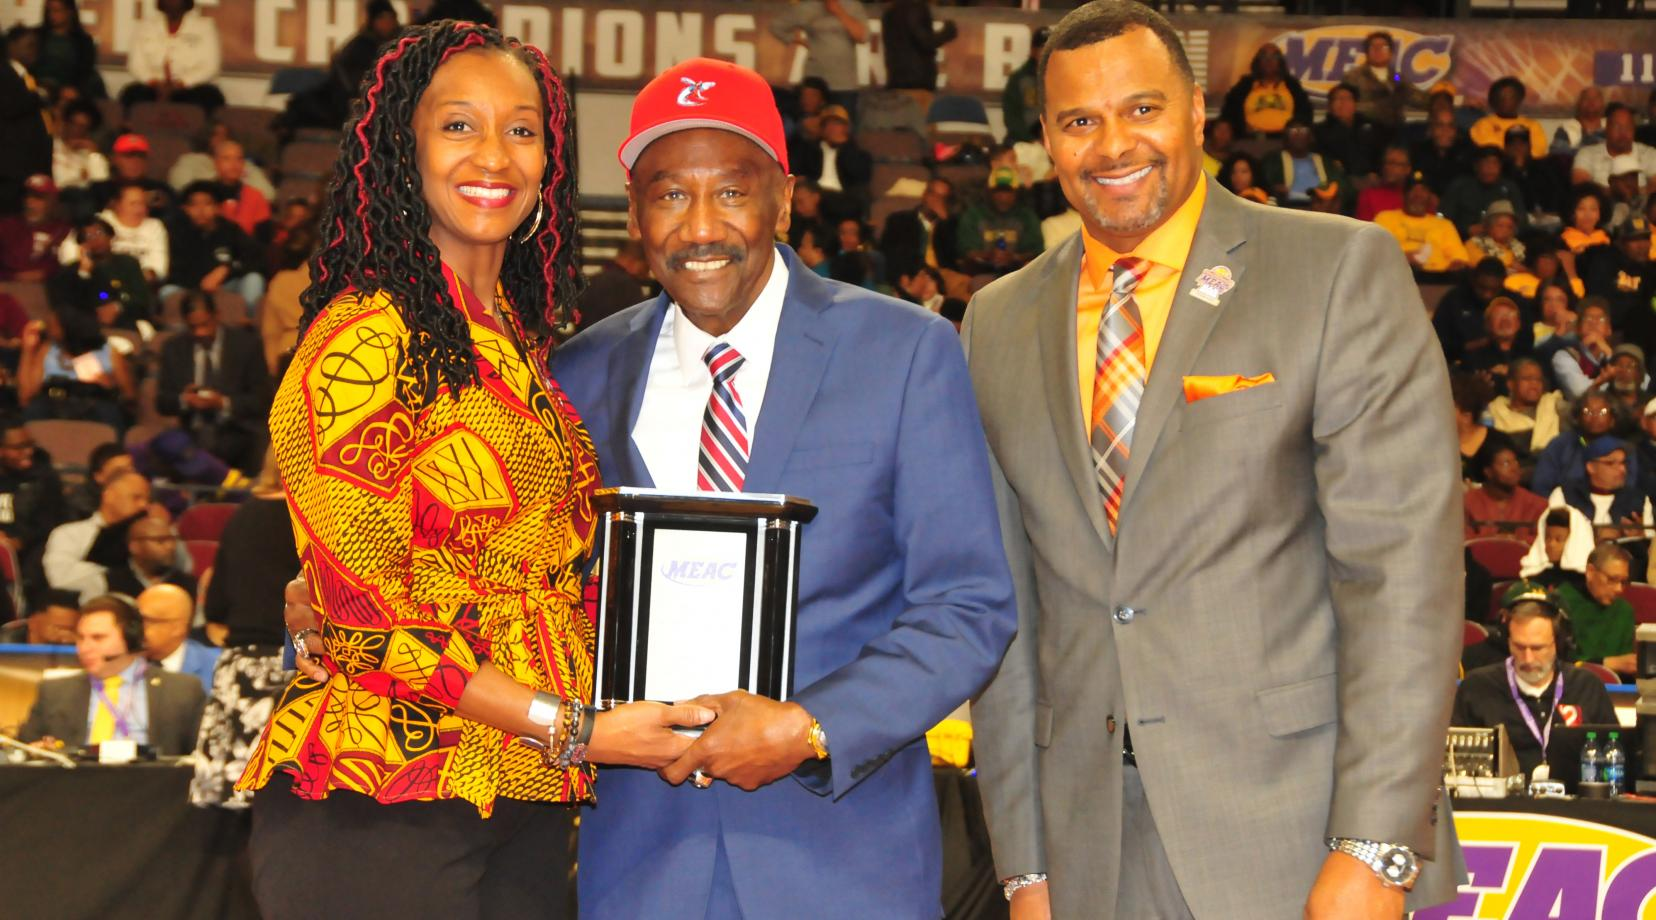 <p>Robert P. Vanderhost (center), DSC class of 1972, was among the 2018 MEAC Alumni of the Year. He is shown March 8 at the MEAC Basketball Tourney accepting the award from two conference officials.</p>